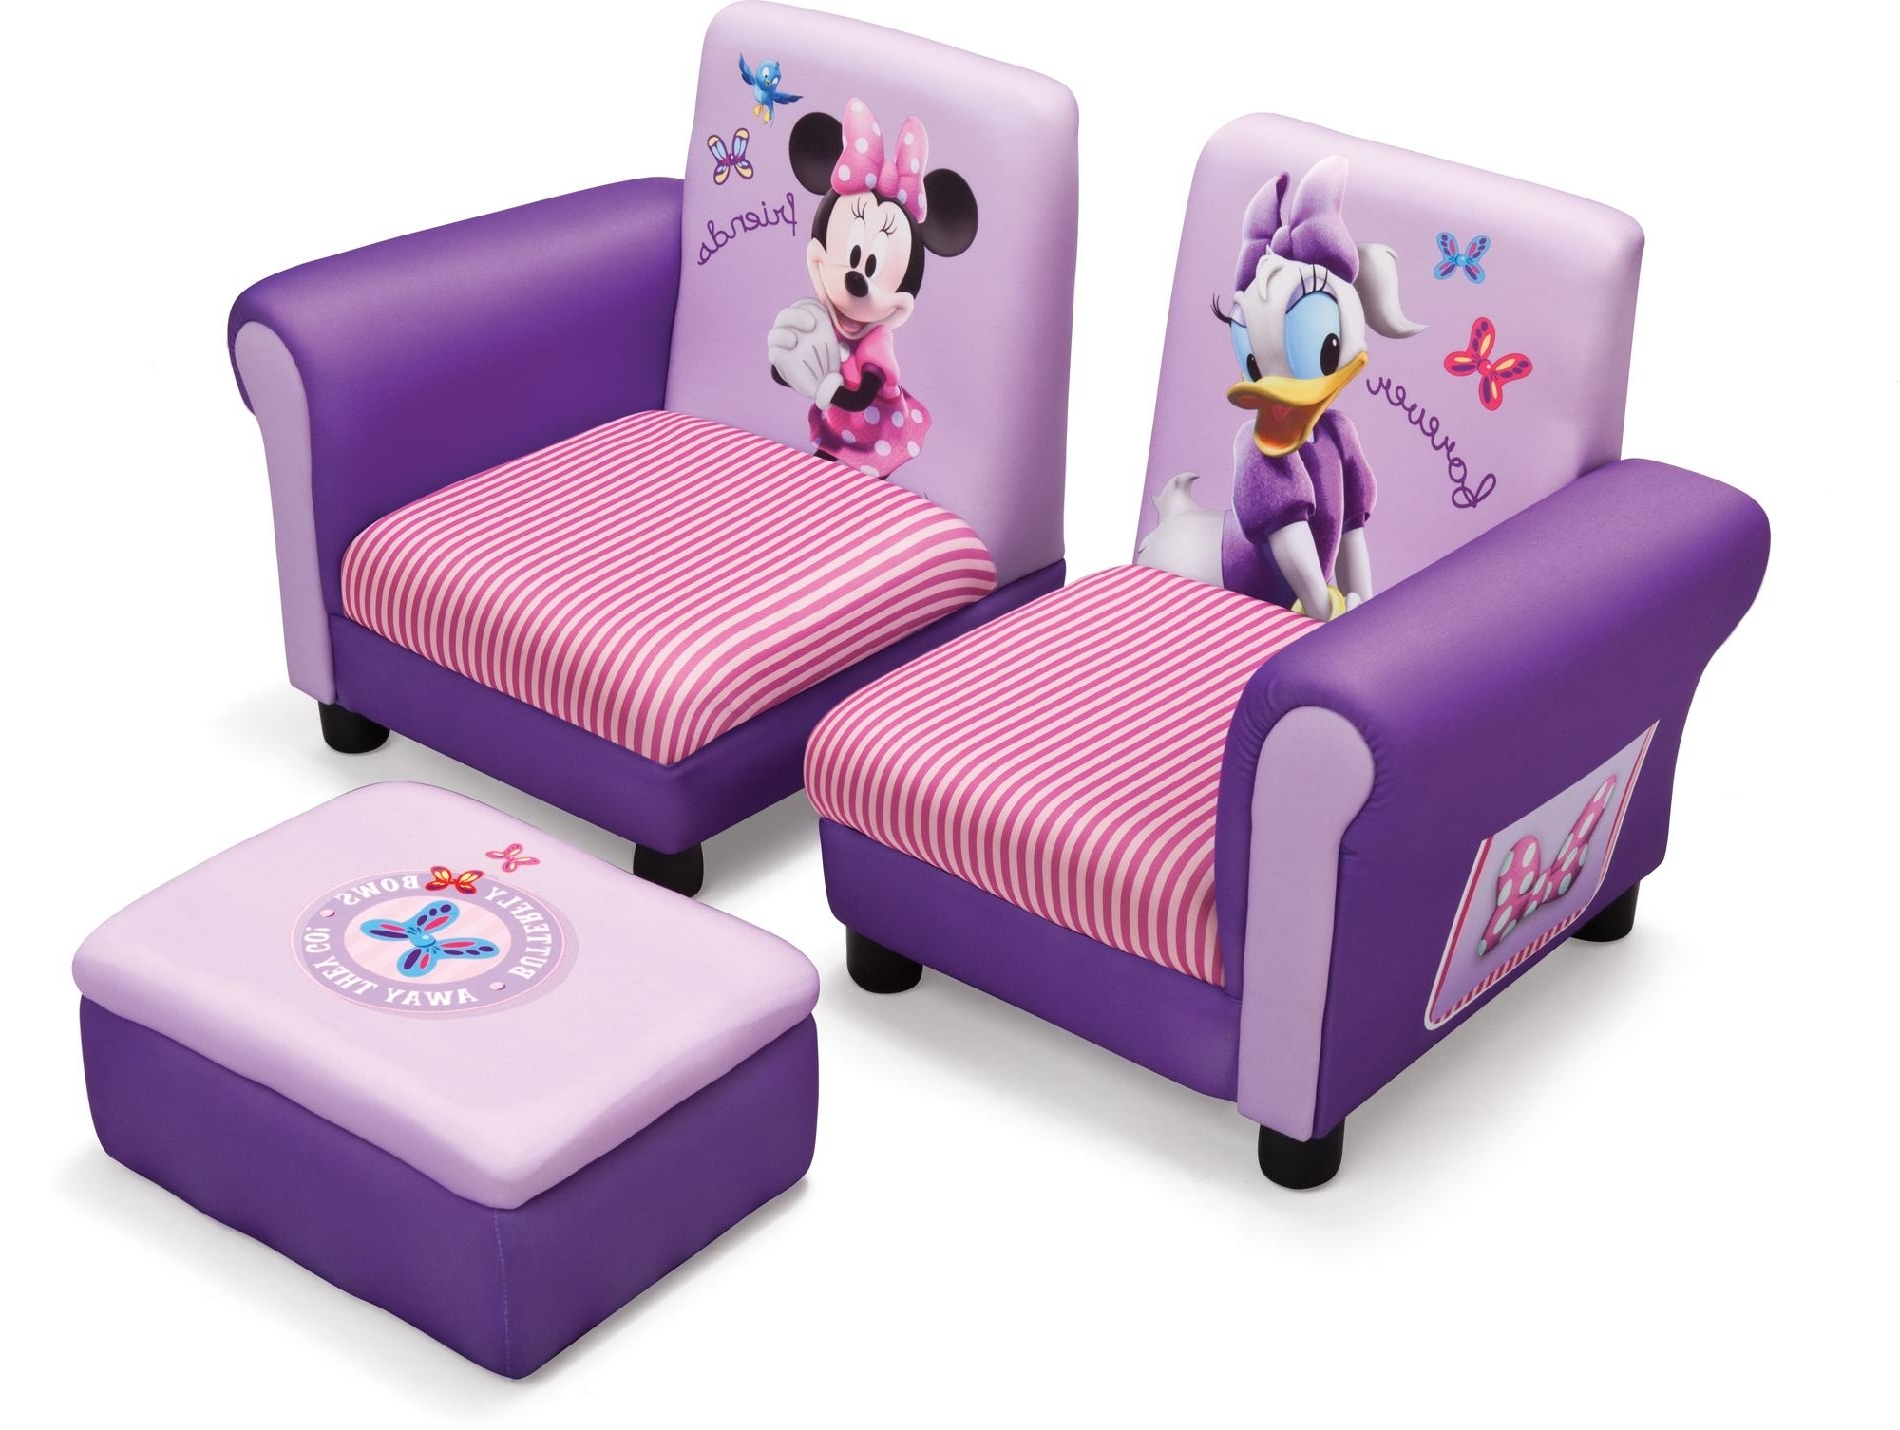 Minnie Mouse Kids Furniture (View 5 of 20)